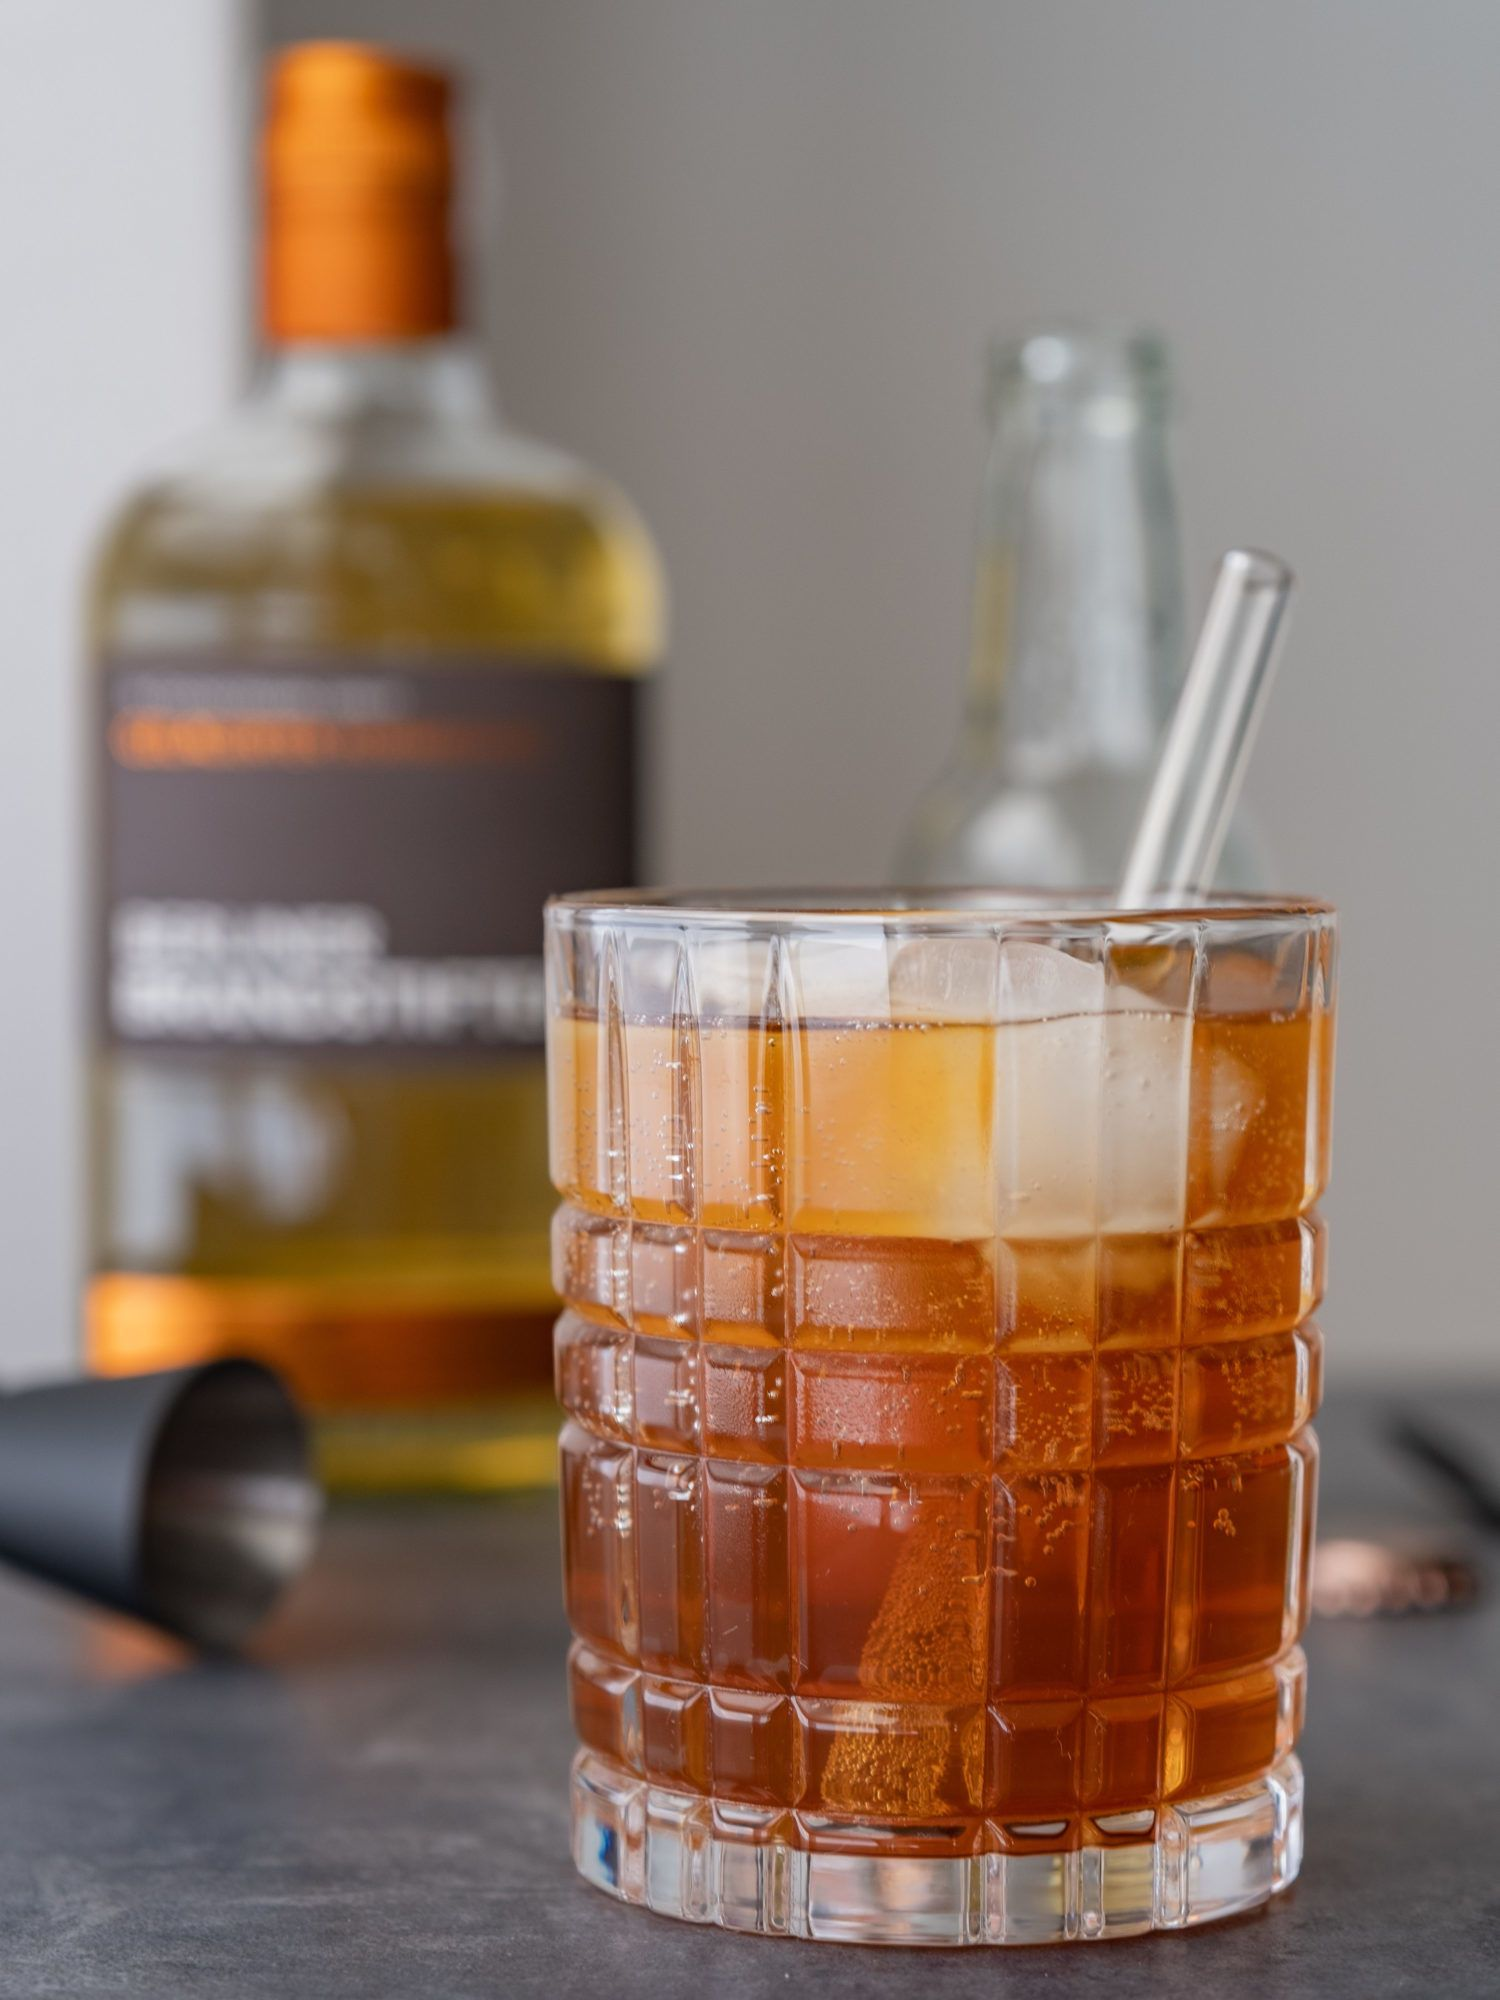 Foodblog, About Fuel, Brandstifter Coffee Tonic, Cocktail, Rezept